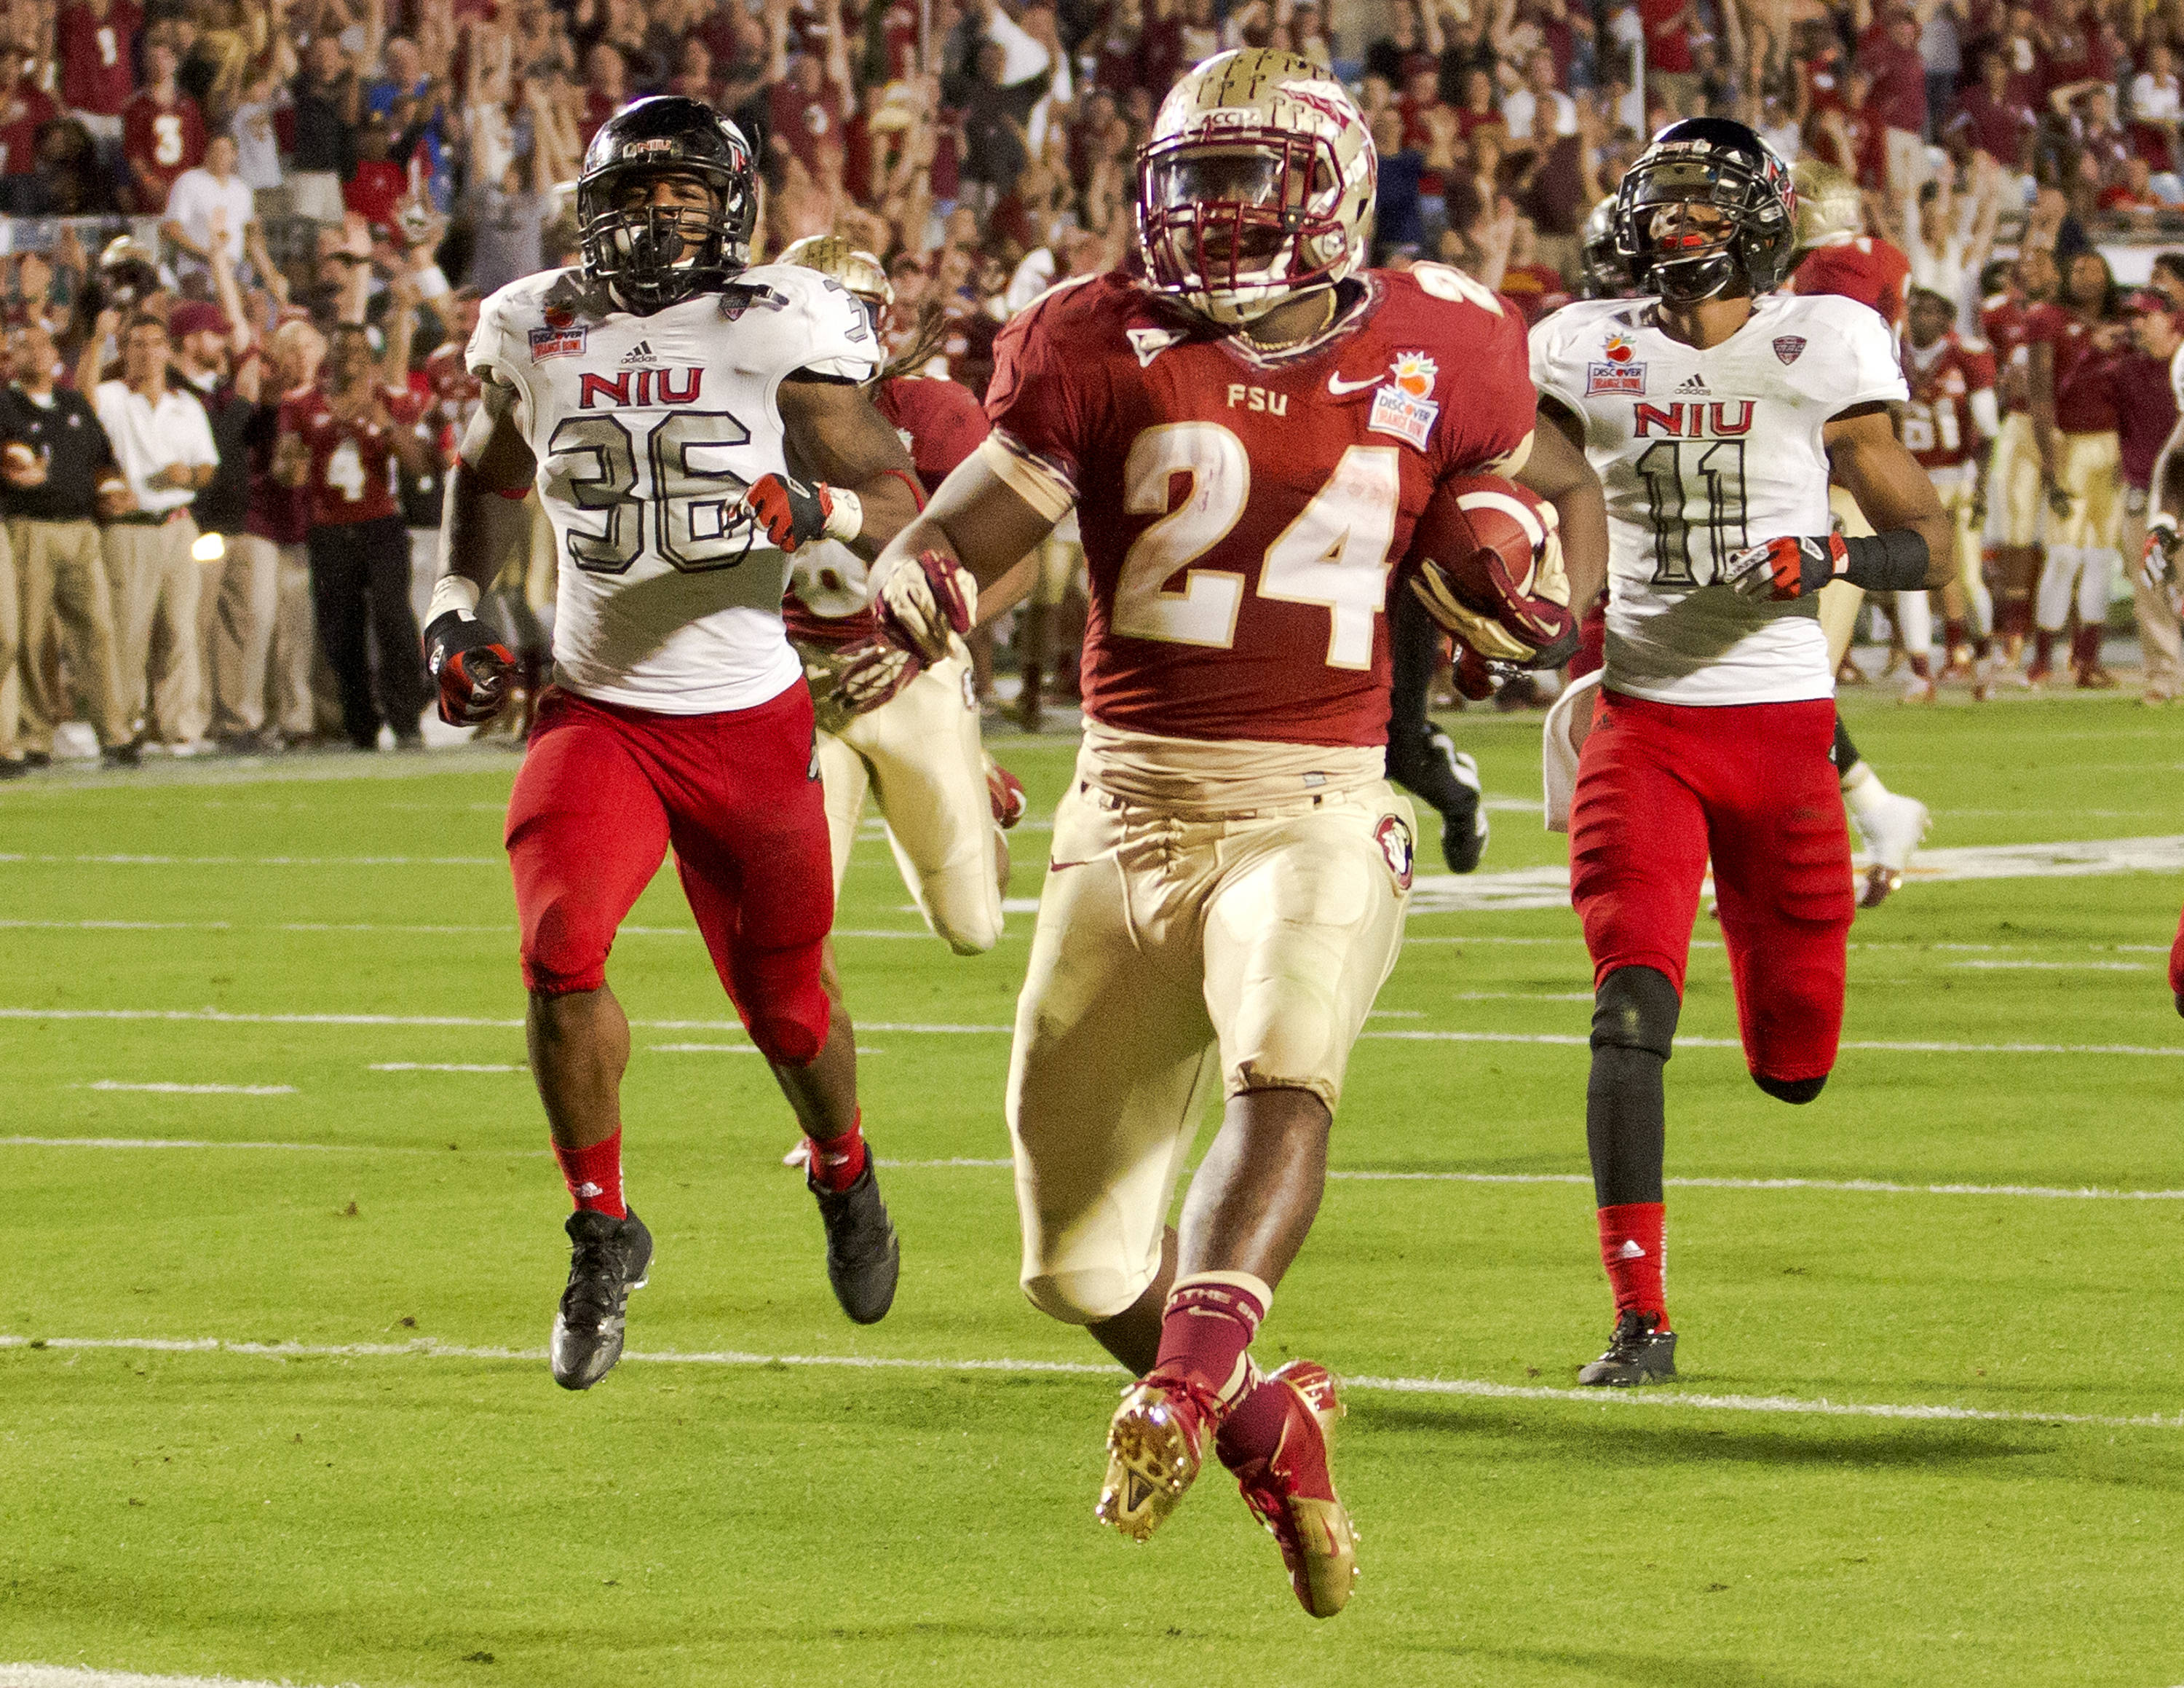 Lonnie Pryor scoring his second touchdown, FSU vs No. Illinois, 01/01/13. (Photo by Steve Musco)